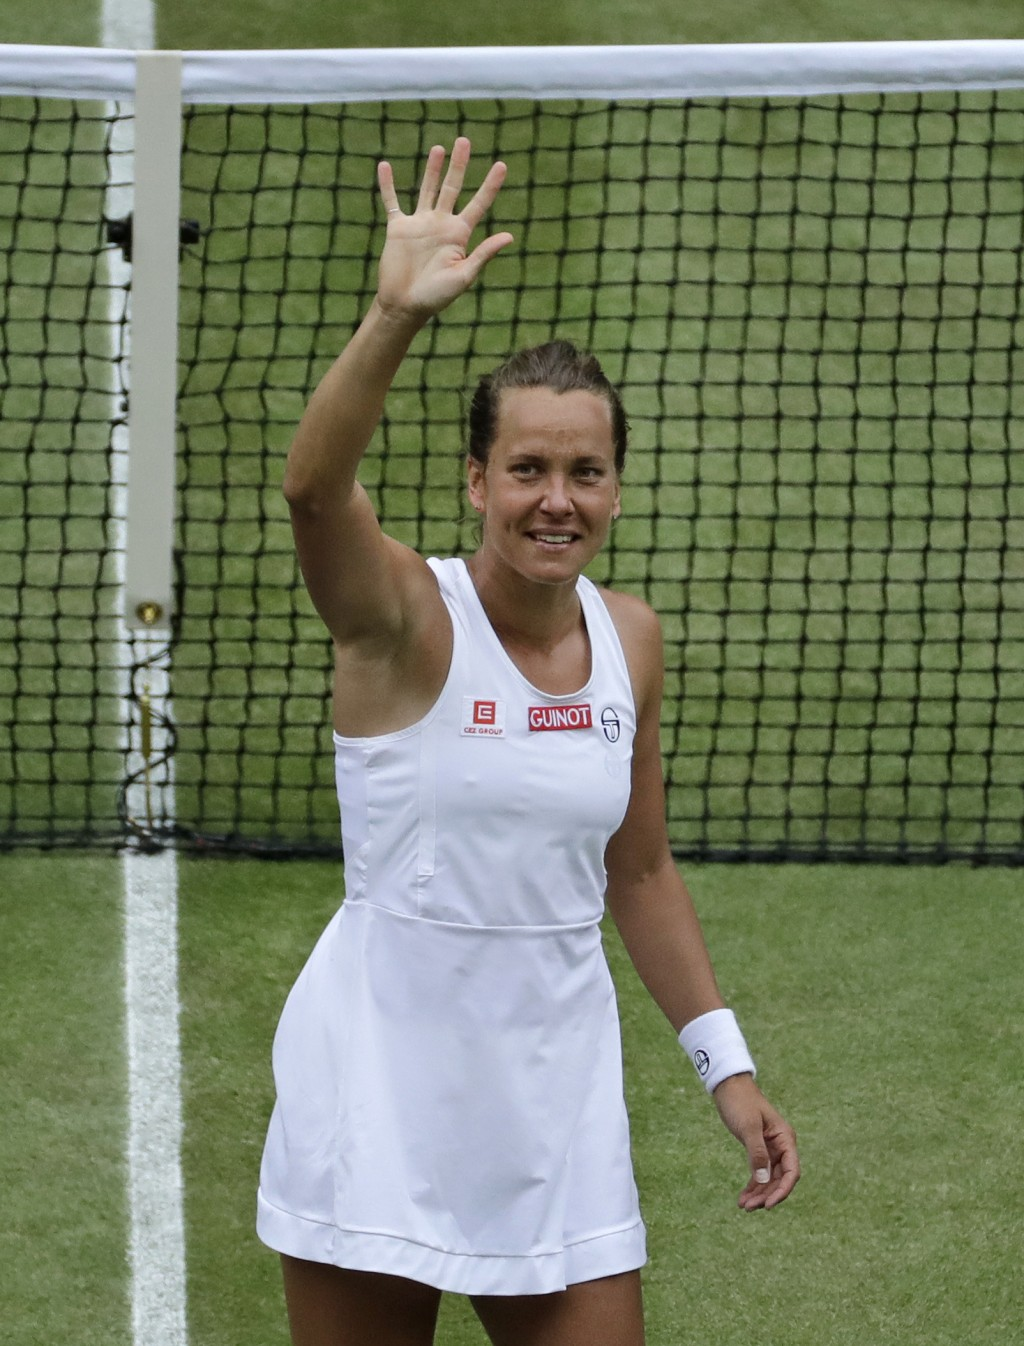 Czech Republic's Barbora Strycova celebrates after beating Britain's Johanna Konta in a Women's quarterfinal singles match on day eight of the Wimbled...